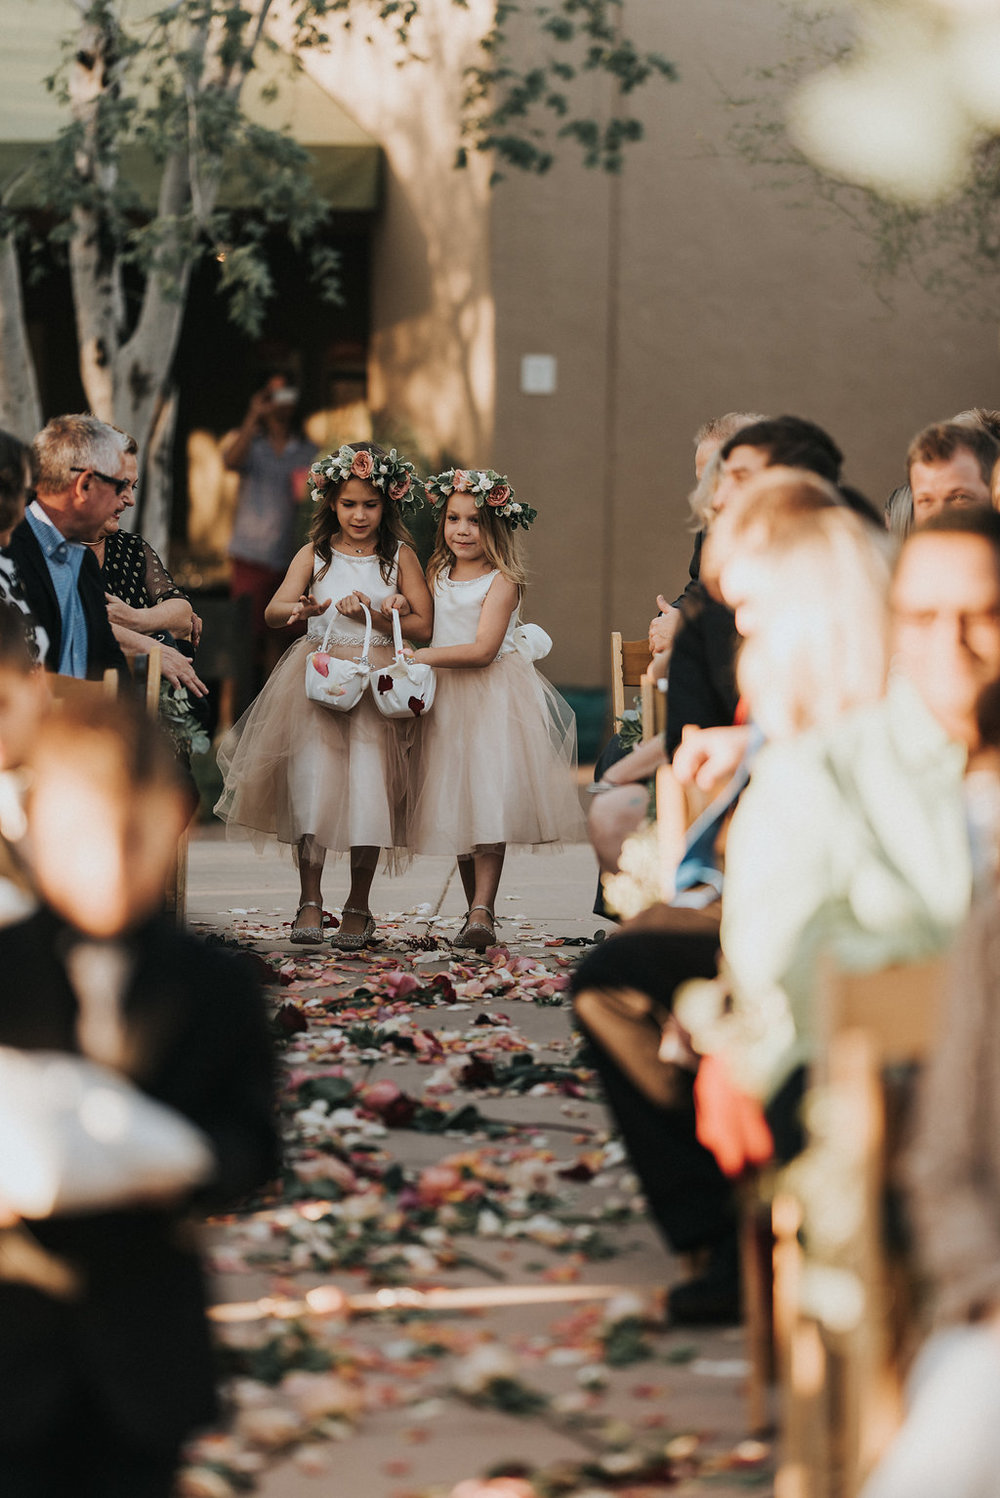 A Colorful Arizona Sunset Wedding at the Desert Botanical Gardens - Tremaine Ranch Arizona Wedding Event Vintage Furniture Tableware Specialty Rentals with Jonnie and Garrett22.jpg